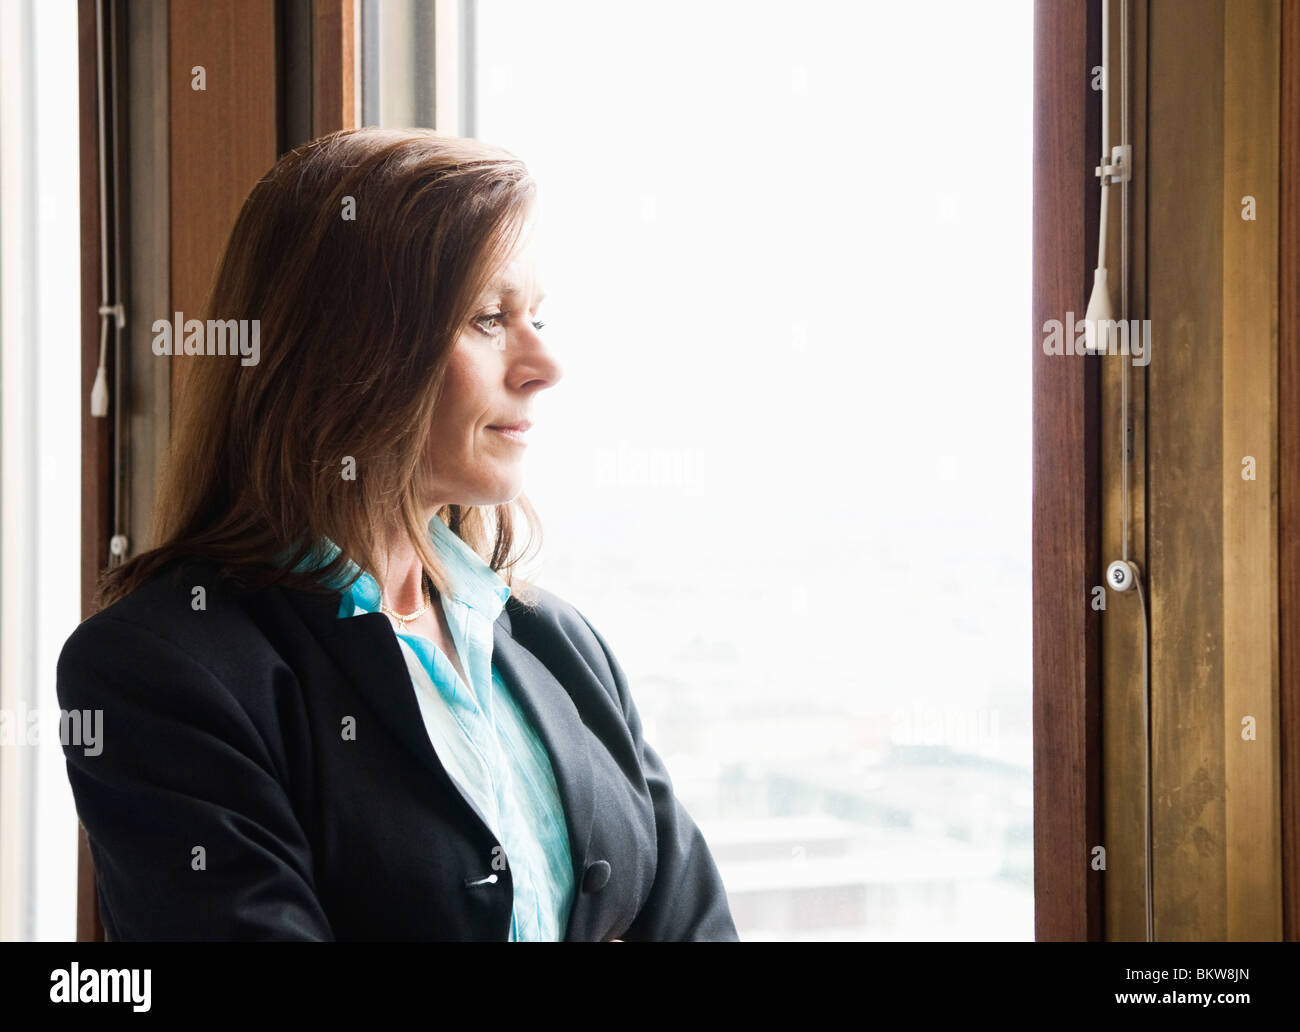 Businesswoman looking out through the window - Stock Image